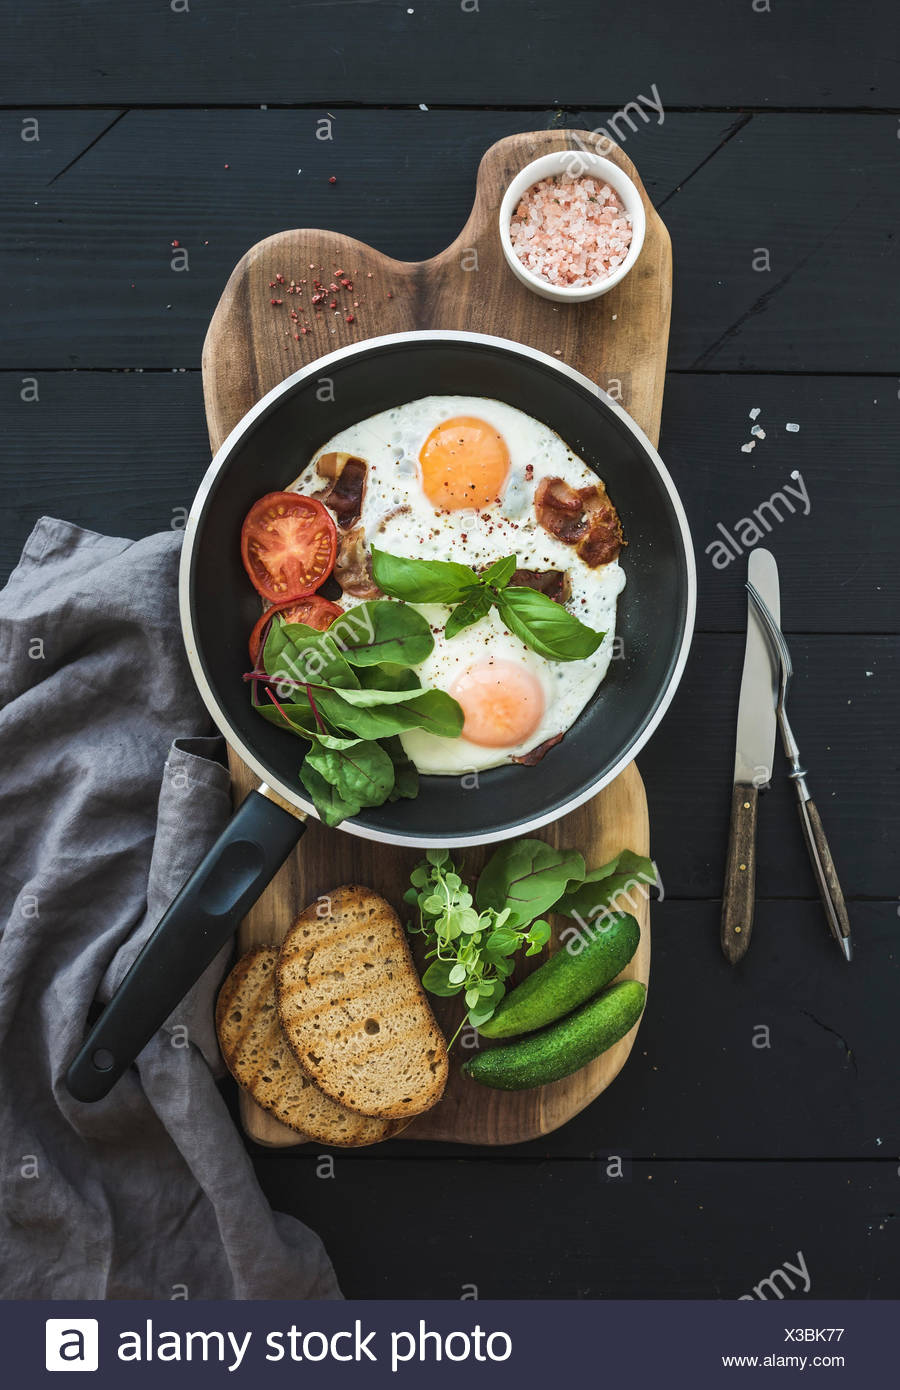 Pan of fried eggs, bacon, cherry tomatoes and fresh herbs with bread on wooden board over dark wooden background, top view - Stock Image